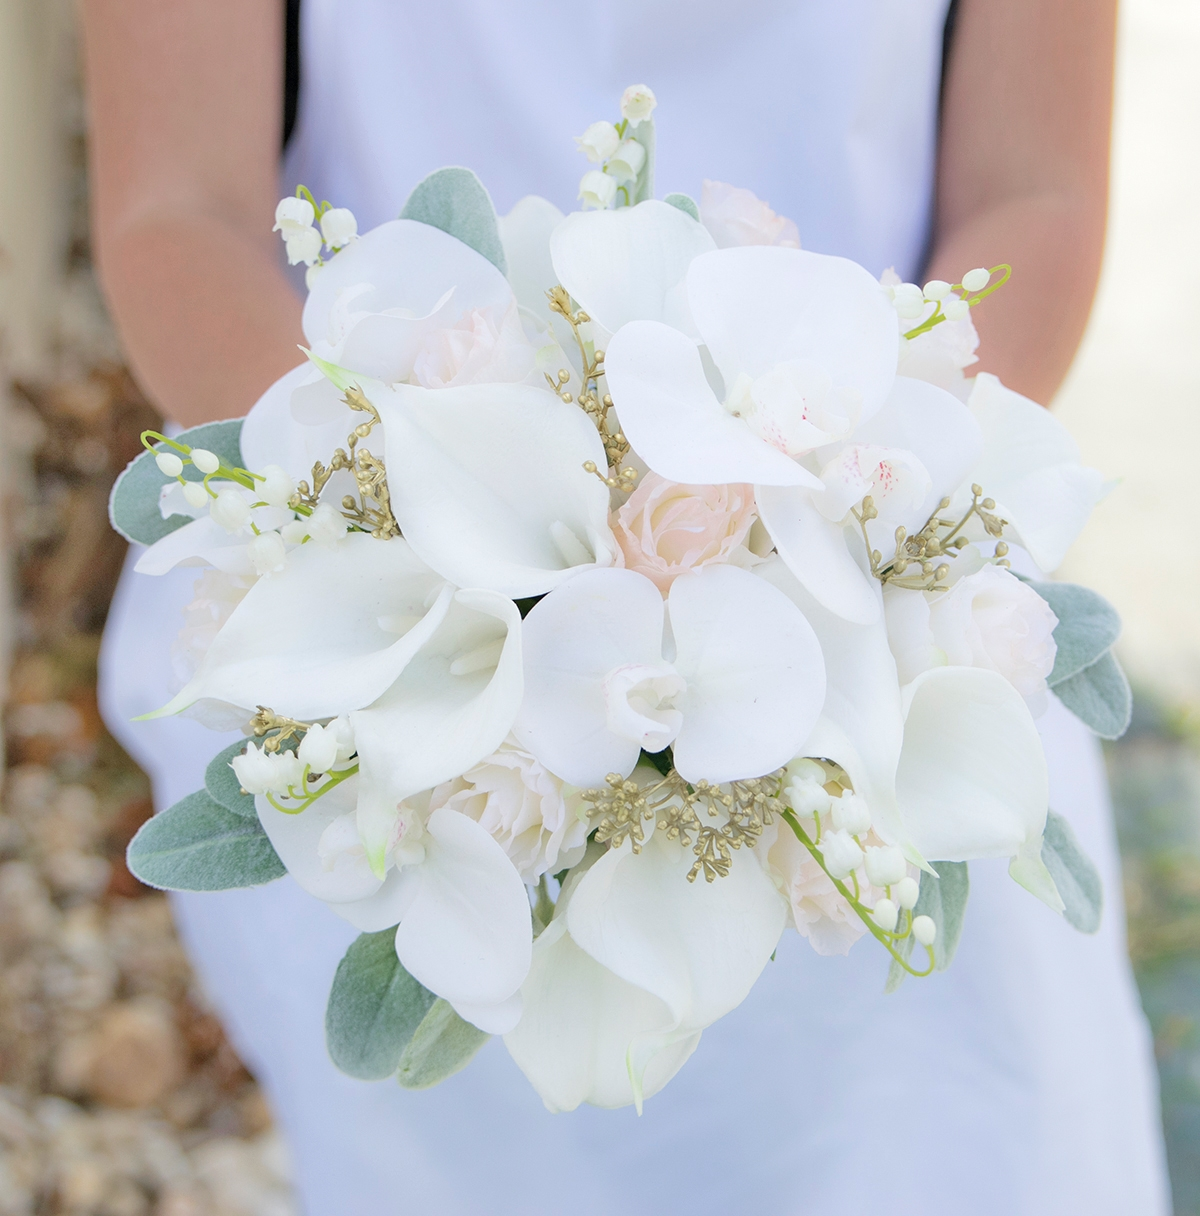 calla lilies Pink Bride bouquet silk wedding flowers roses Bridal whiteoffwhiteivory blush Real Touch flowers